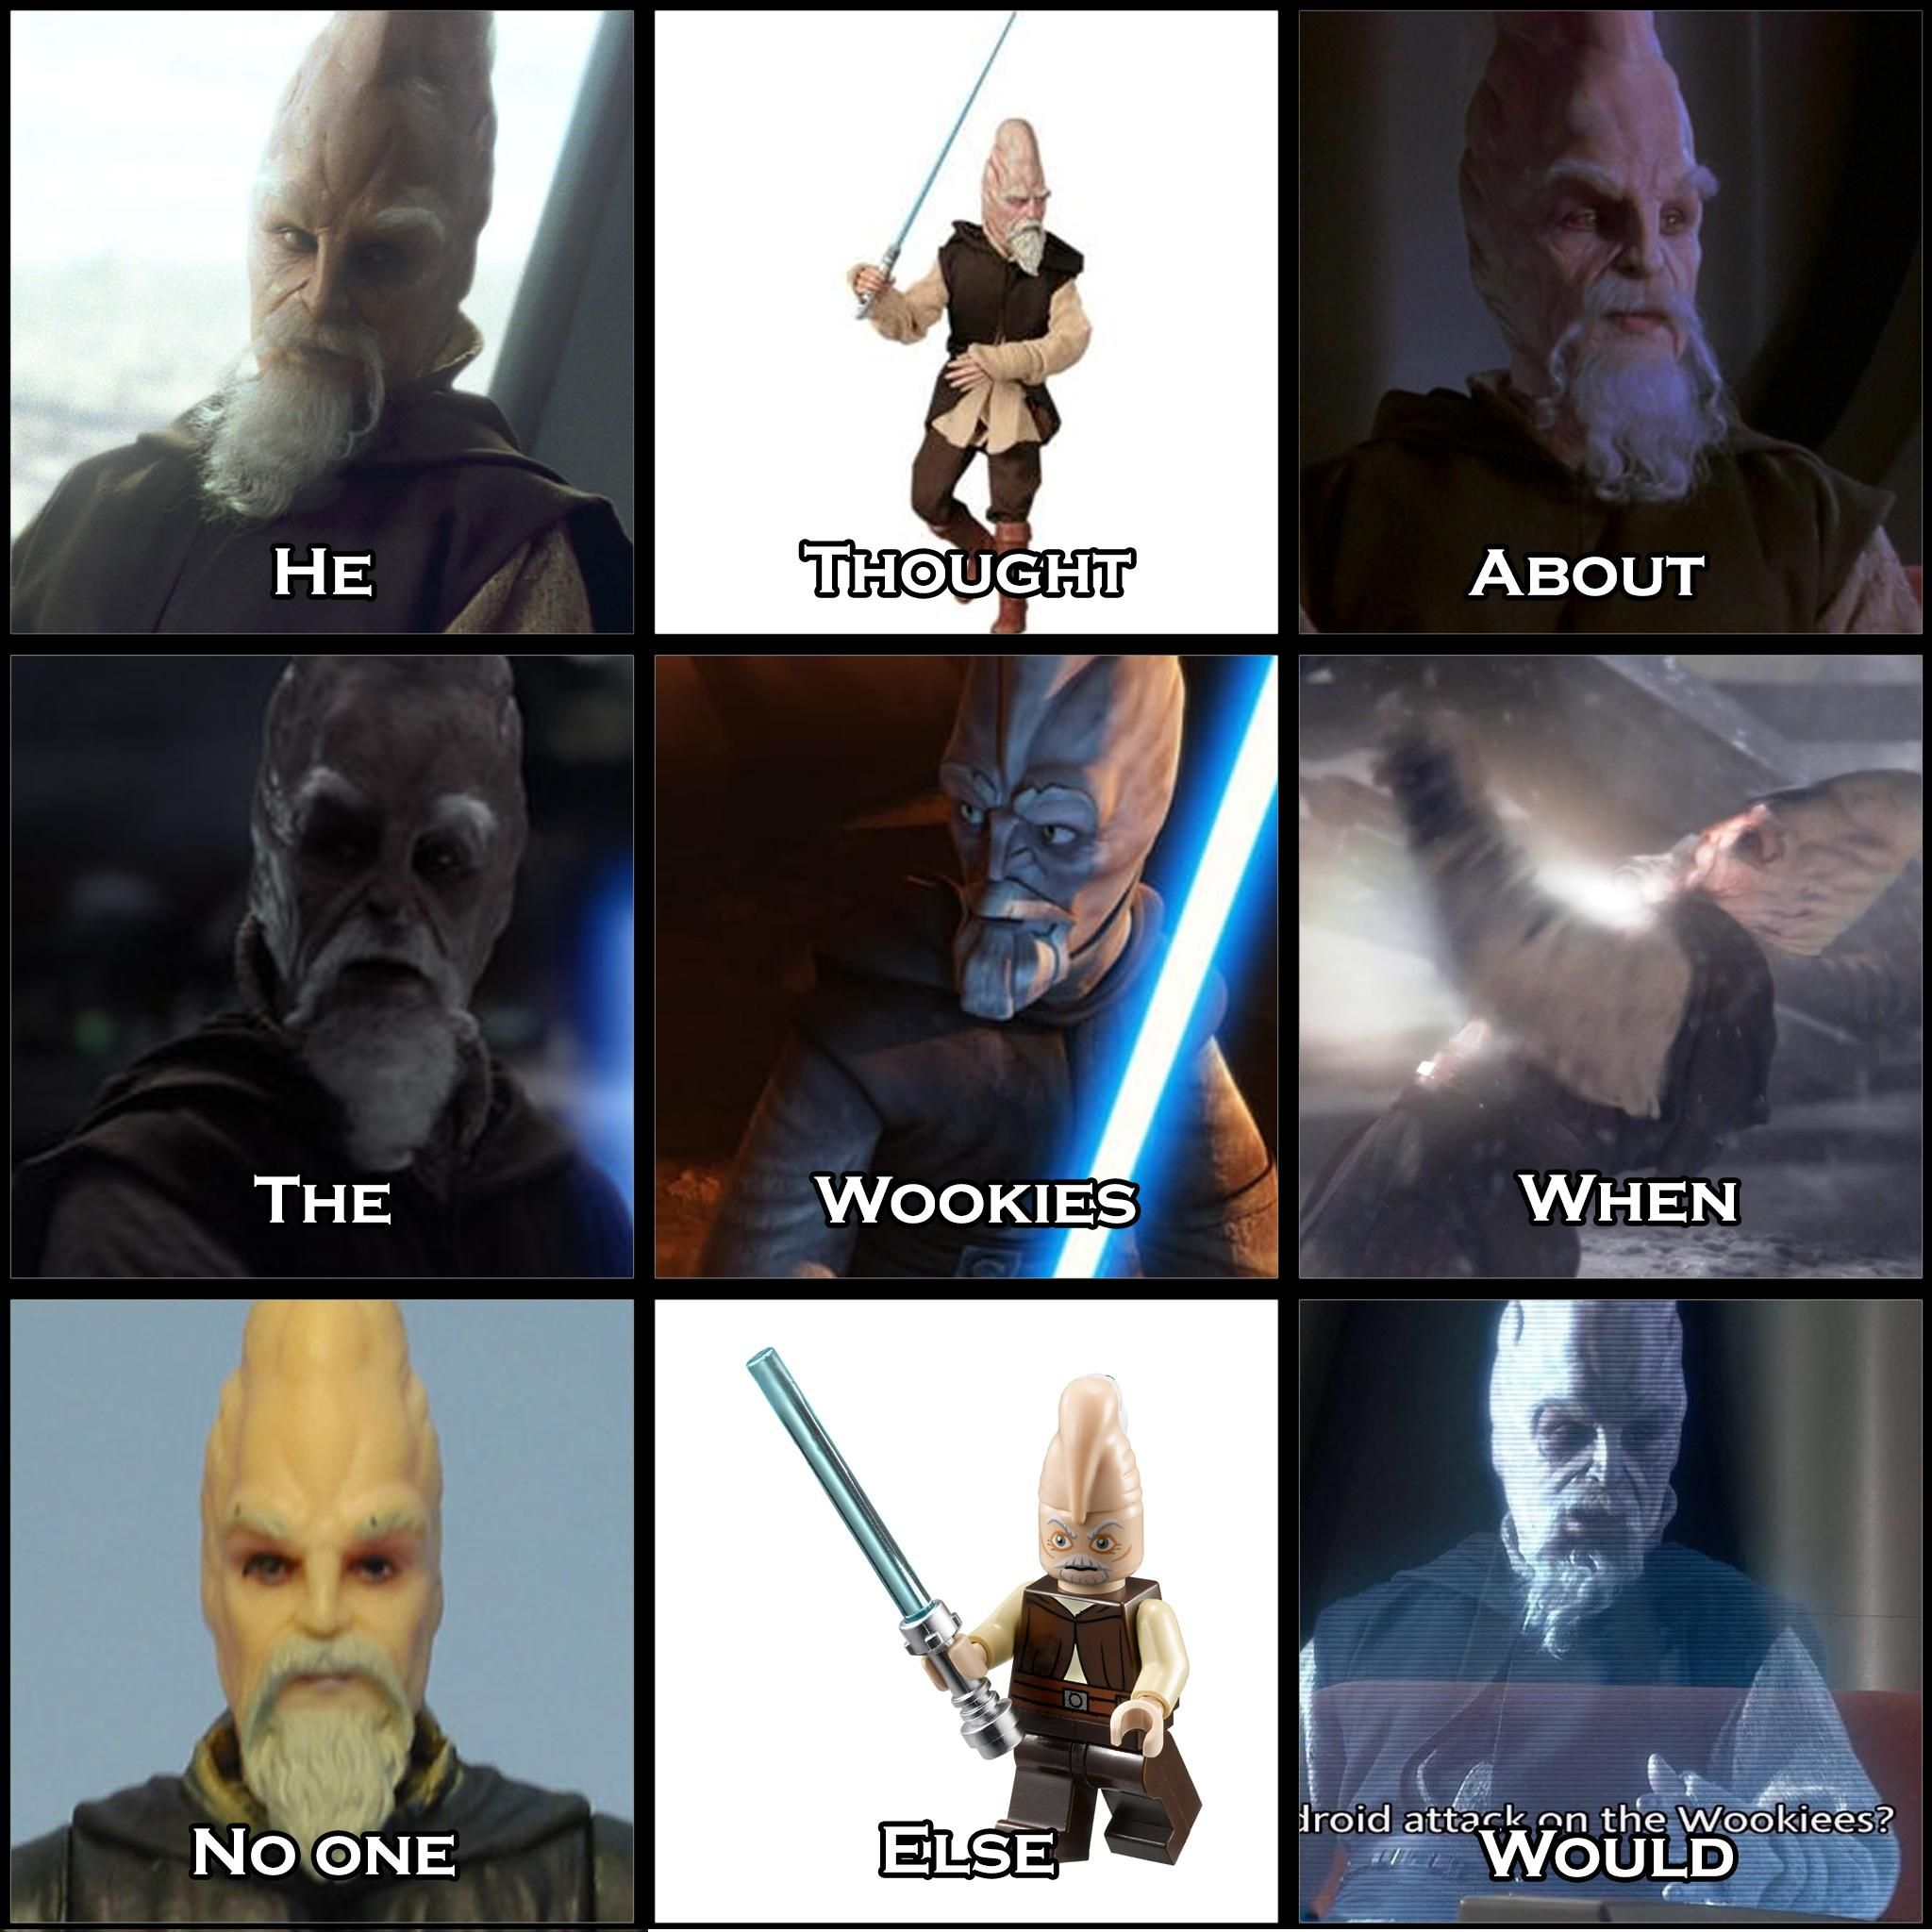 He Thought About The Wookiees When No One Else Would Star Wars Fandom Star Wars Memes Star Wars Episodes